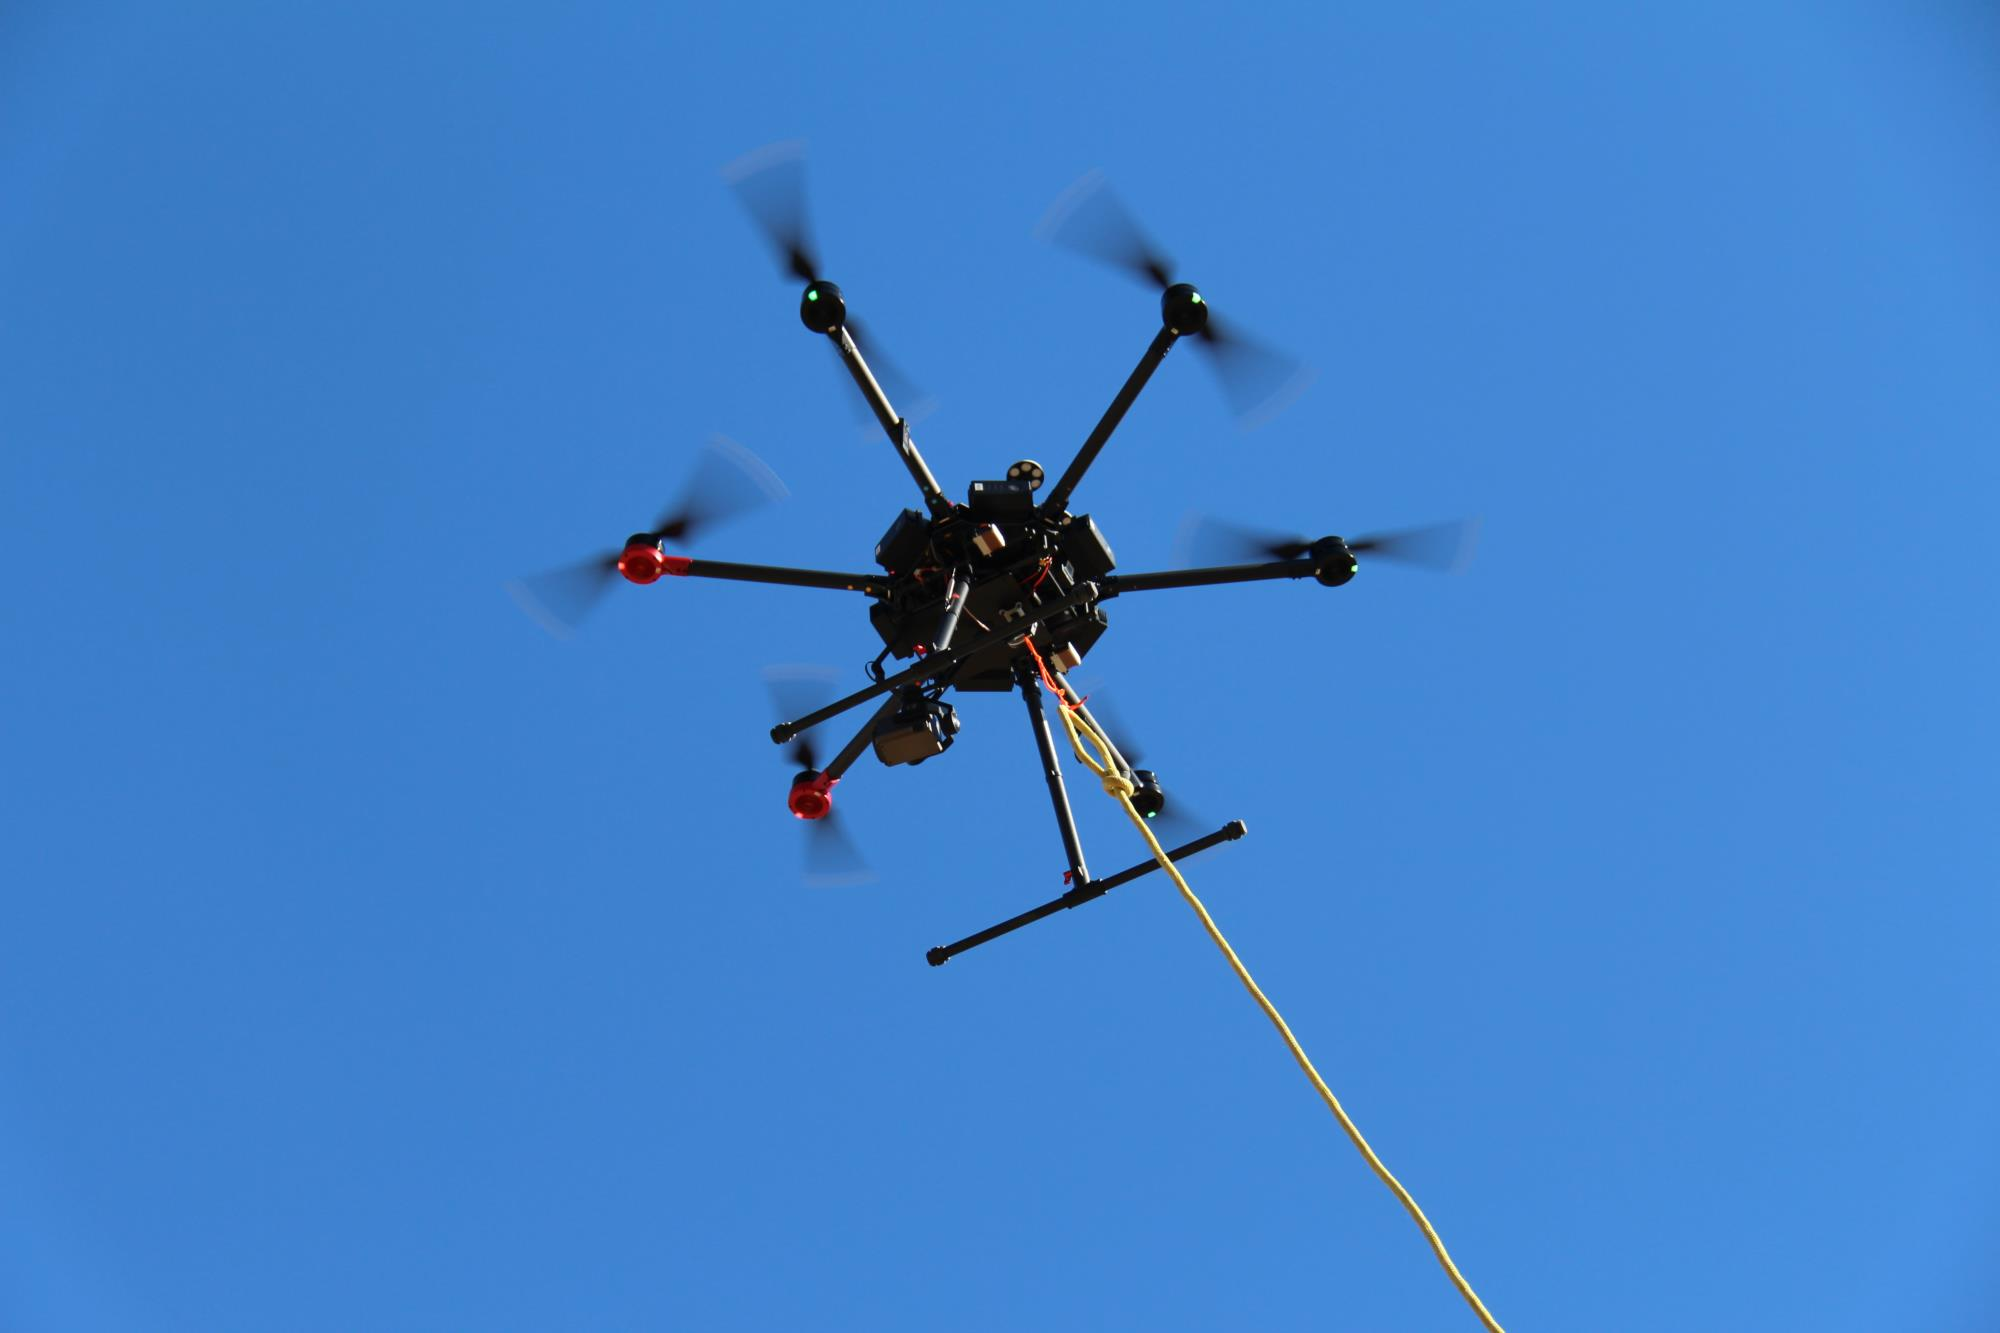 Police use of drones expands rapidly in North Carolina